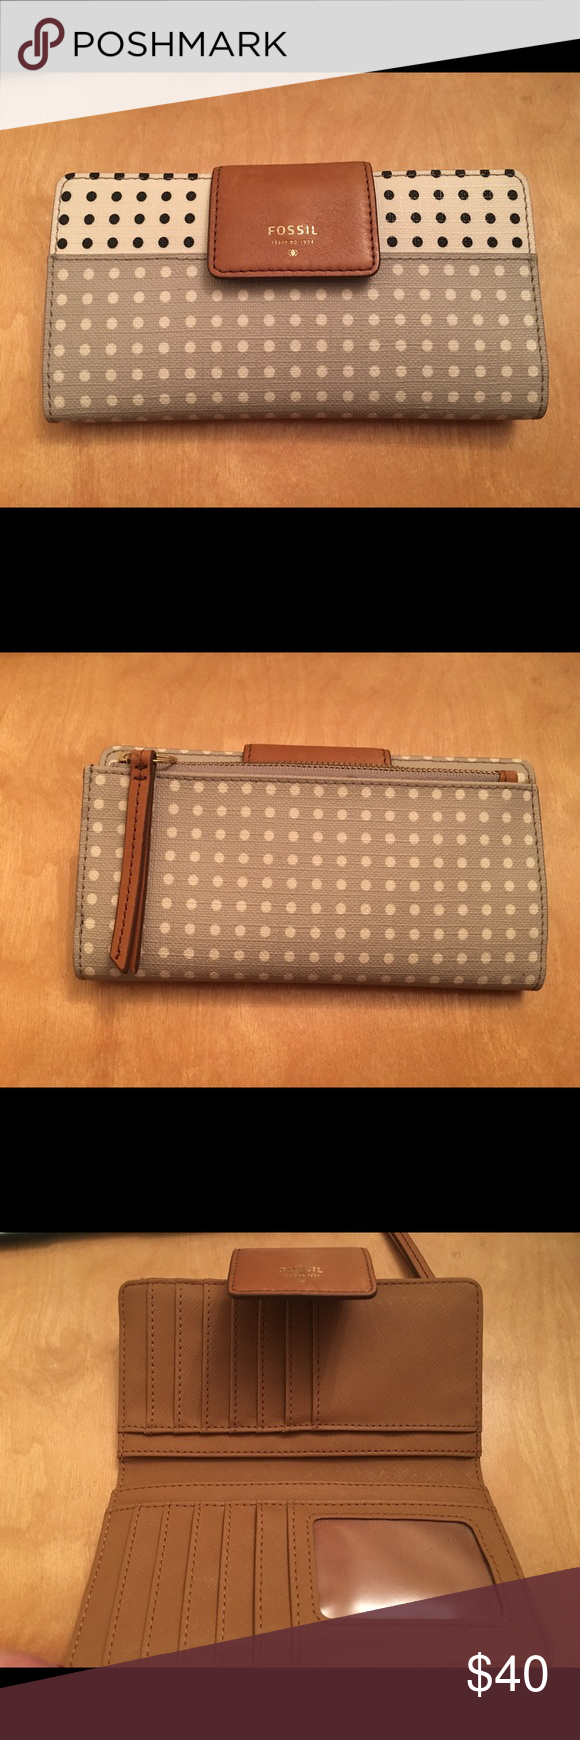 Fossil Wallet Used but in great condition as shown, only scuffs that are on it are shown on the flap Fossil Bags Wallets